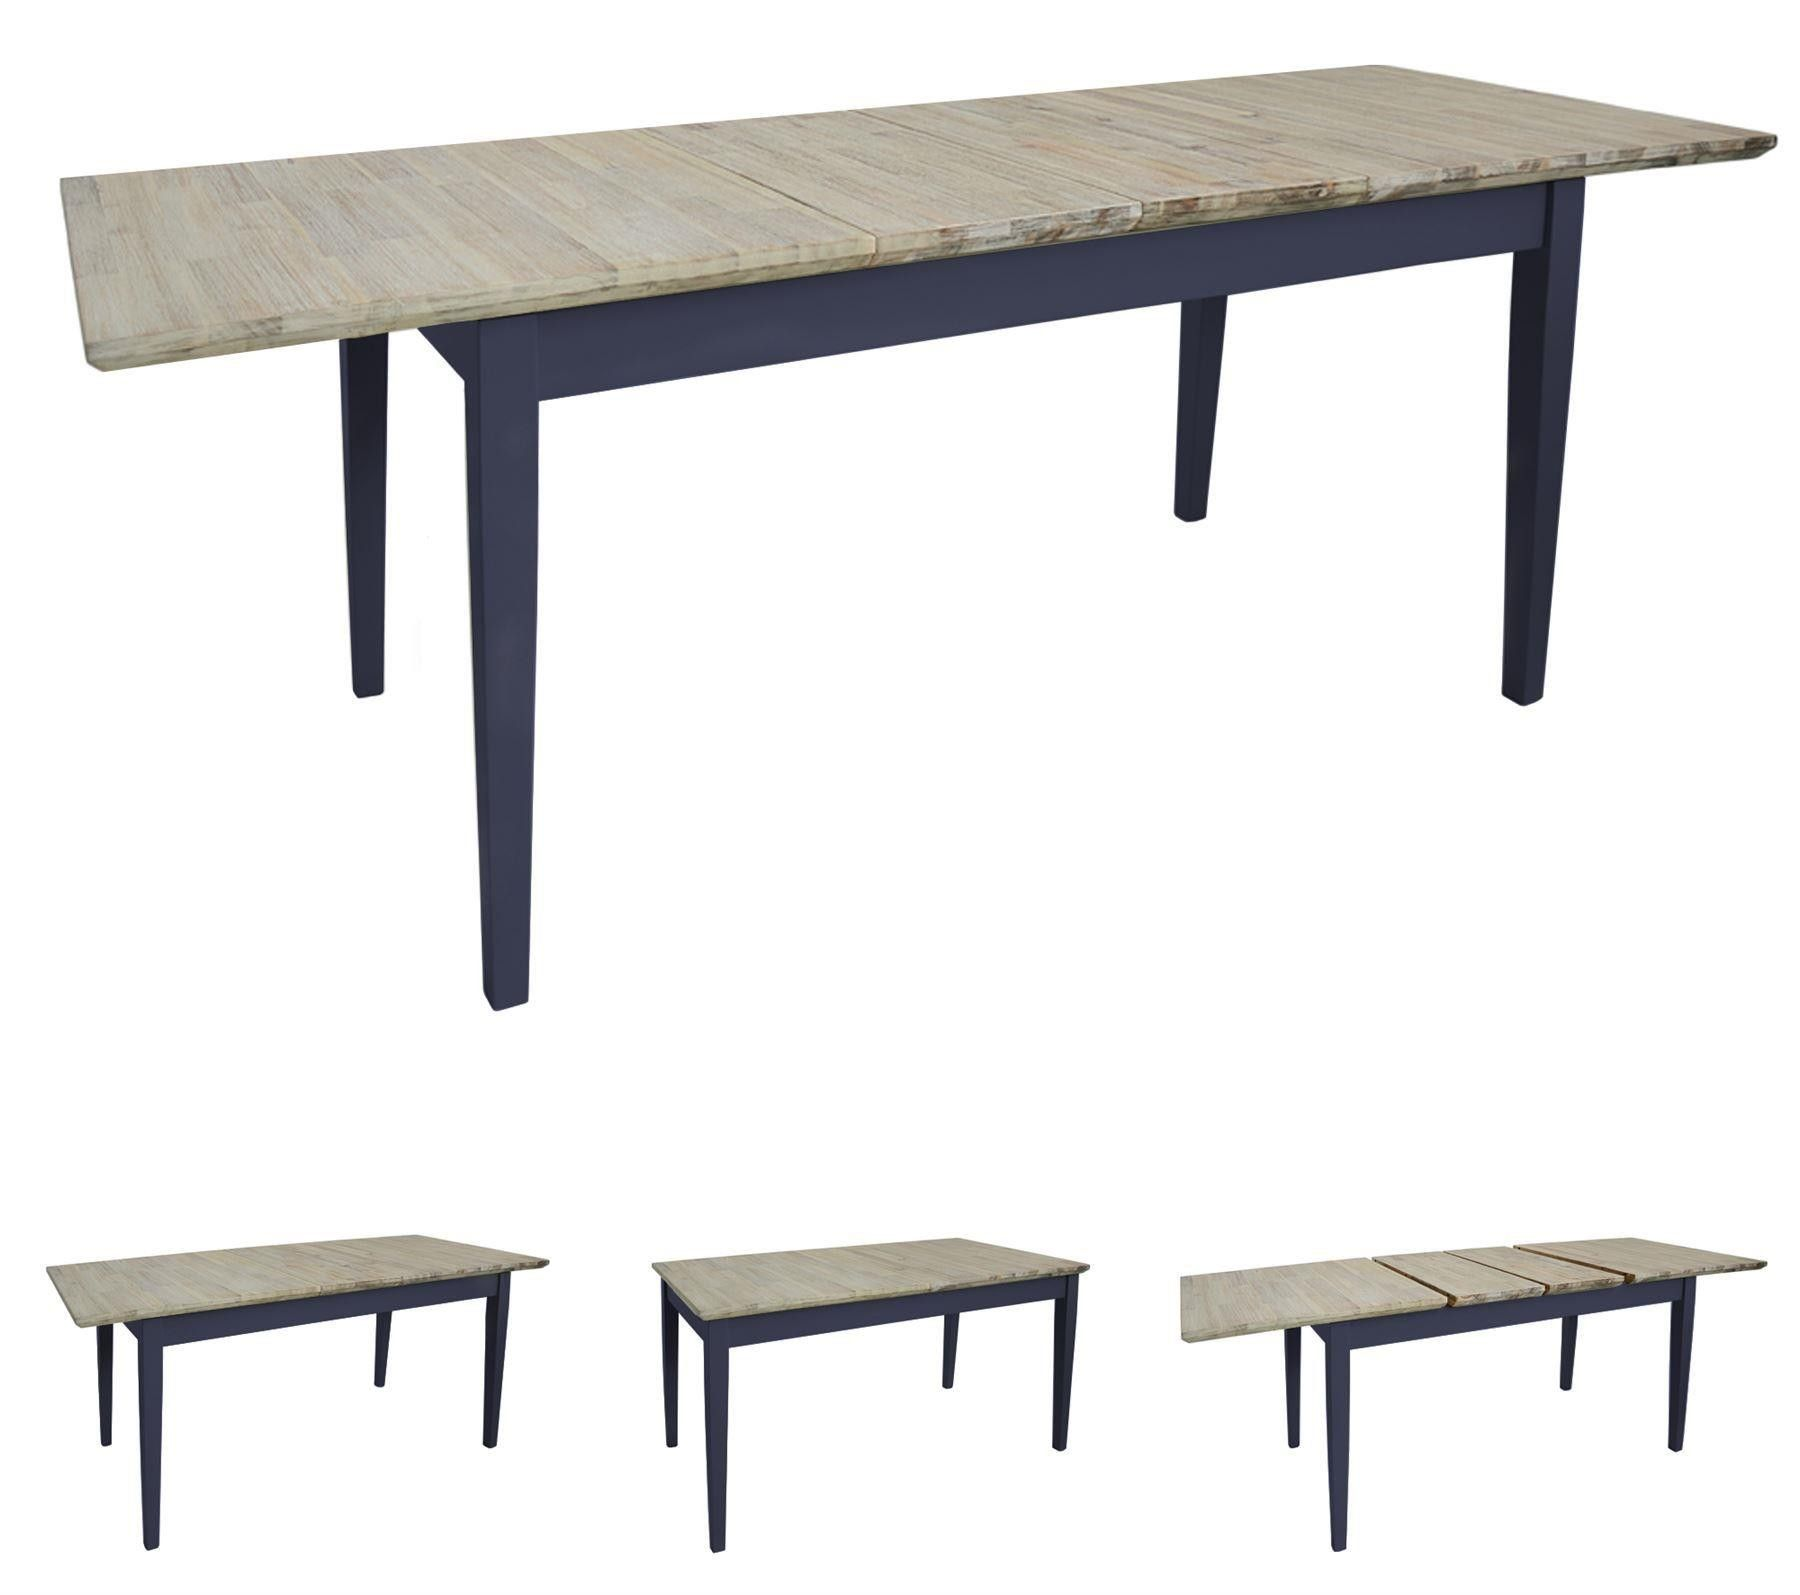 Florence Large Rectangular Centre Extension Kitchen Table 140 170 200 Navy Blue Kitchen Dining Blue Kitchen Tables Dining Table In Kitchen Kitchen Table